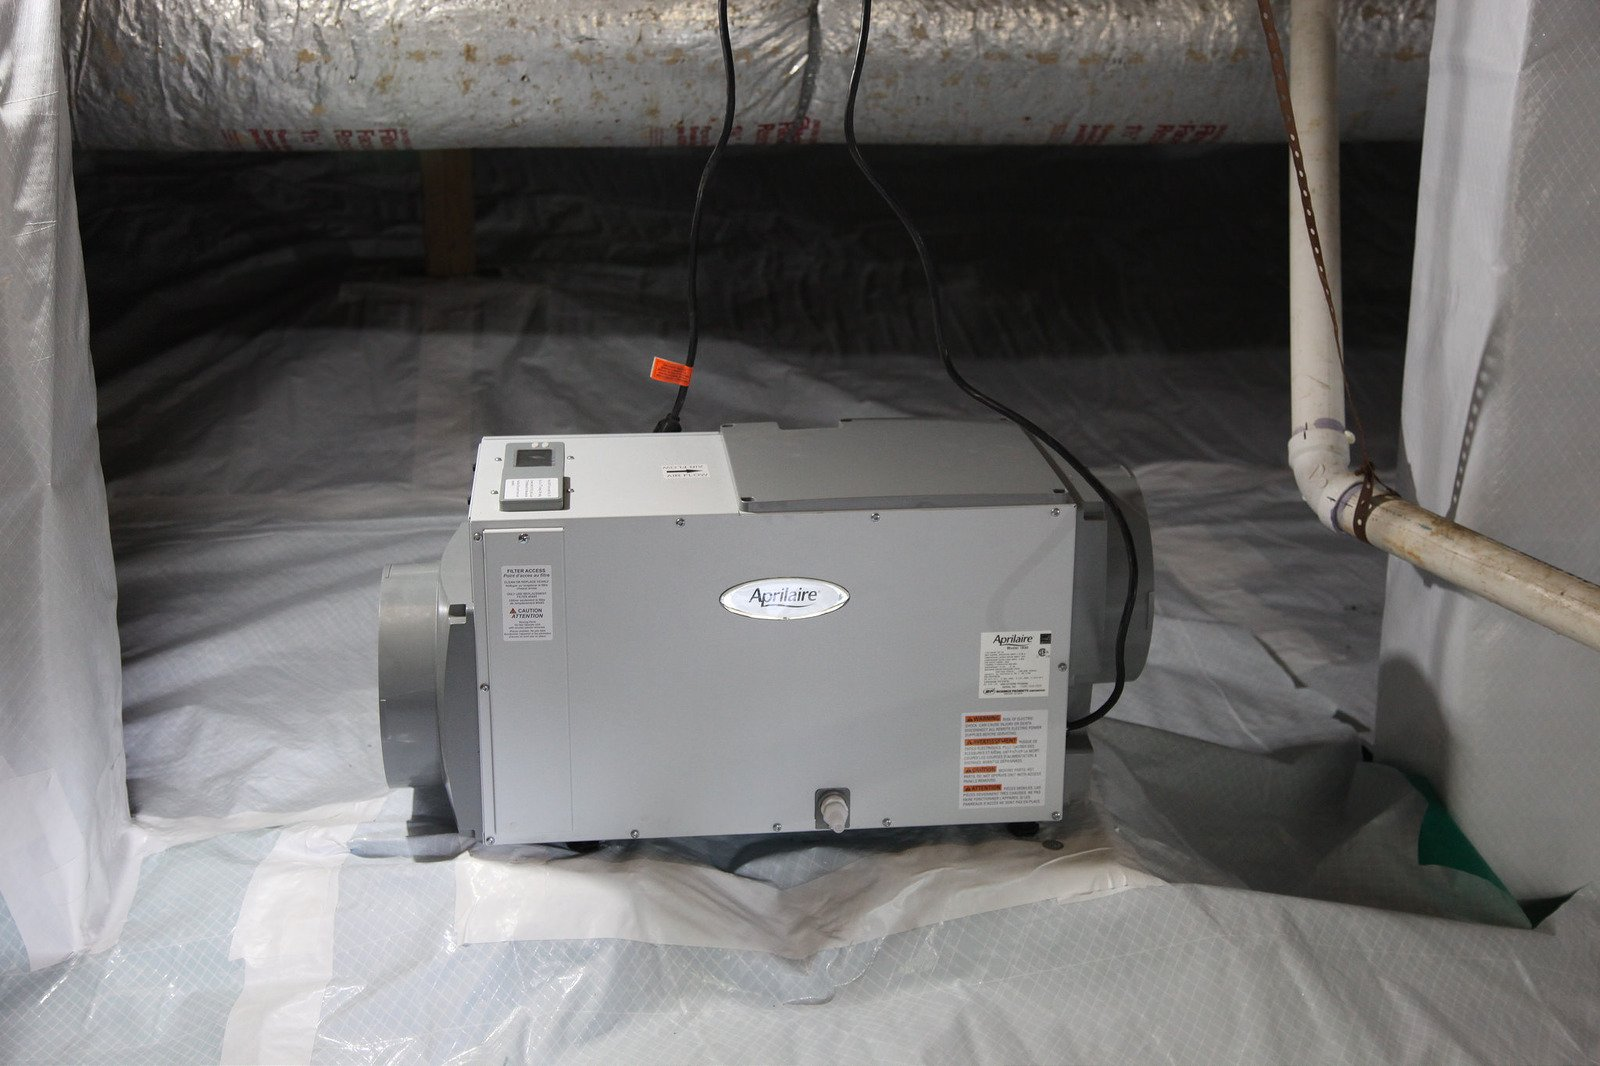 aprilaire dehumidifier in crawl space image